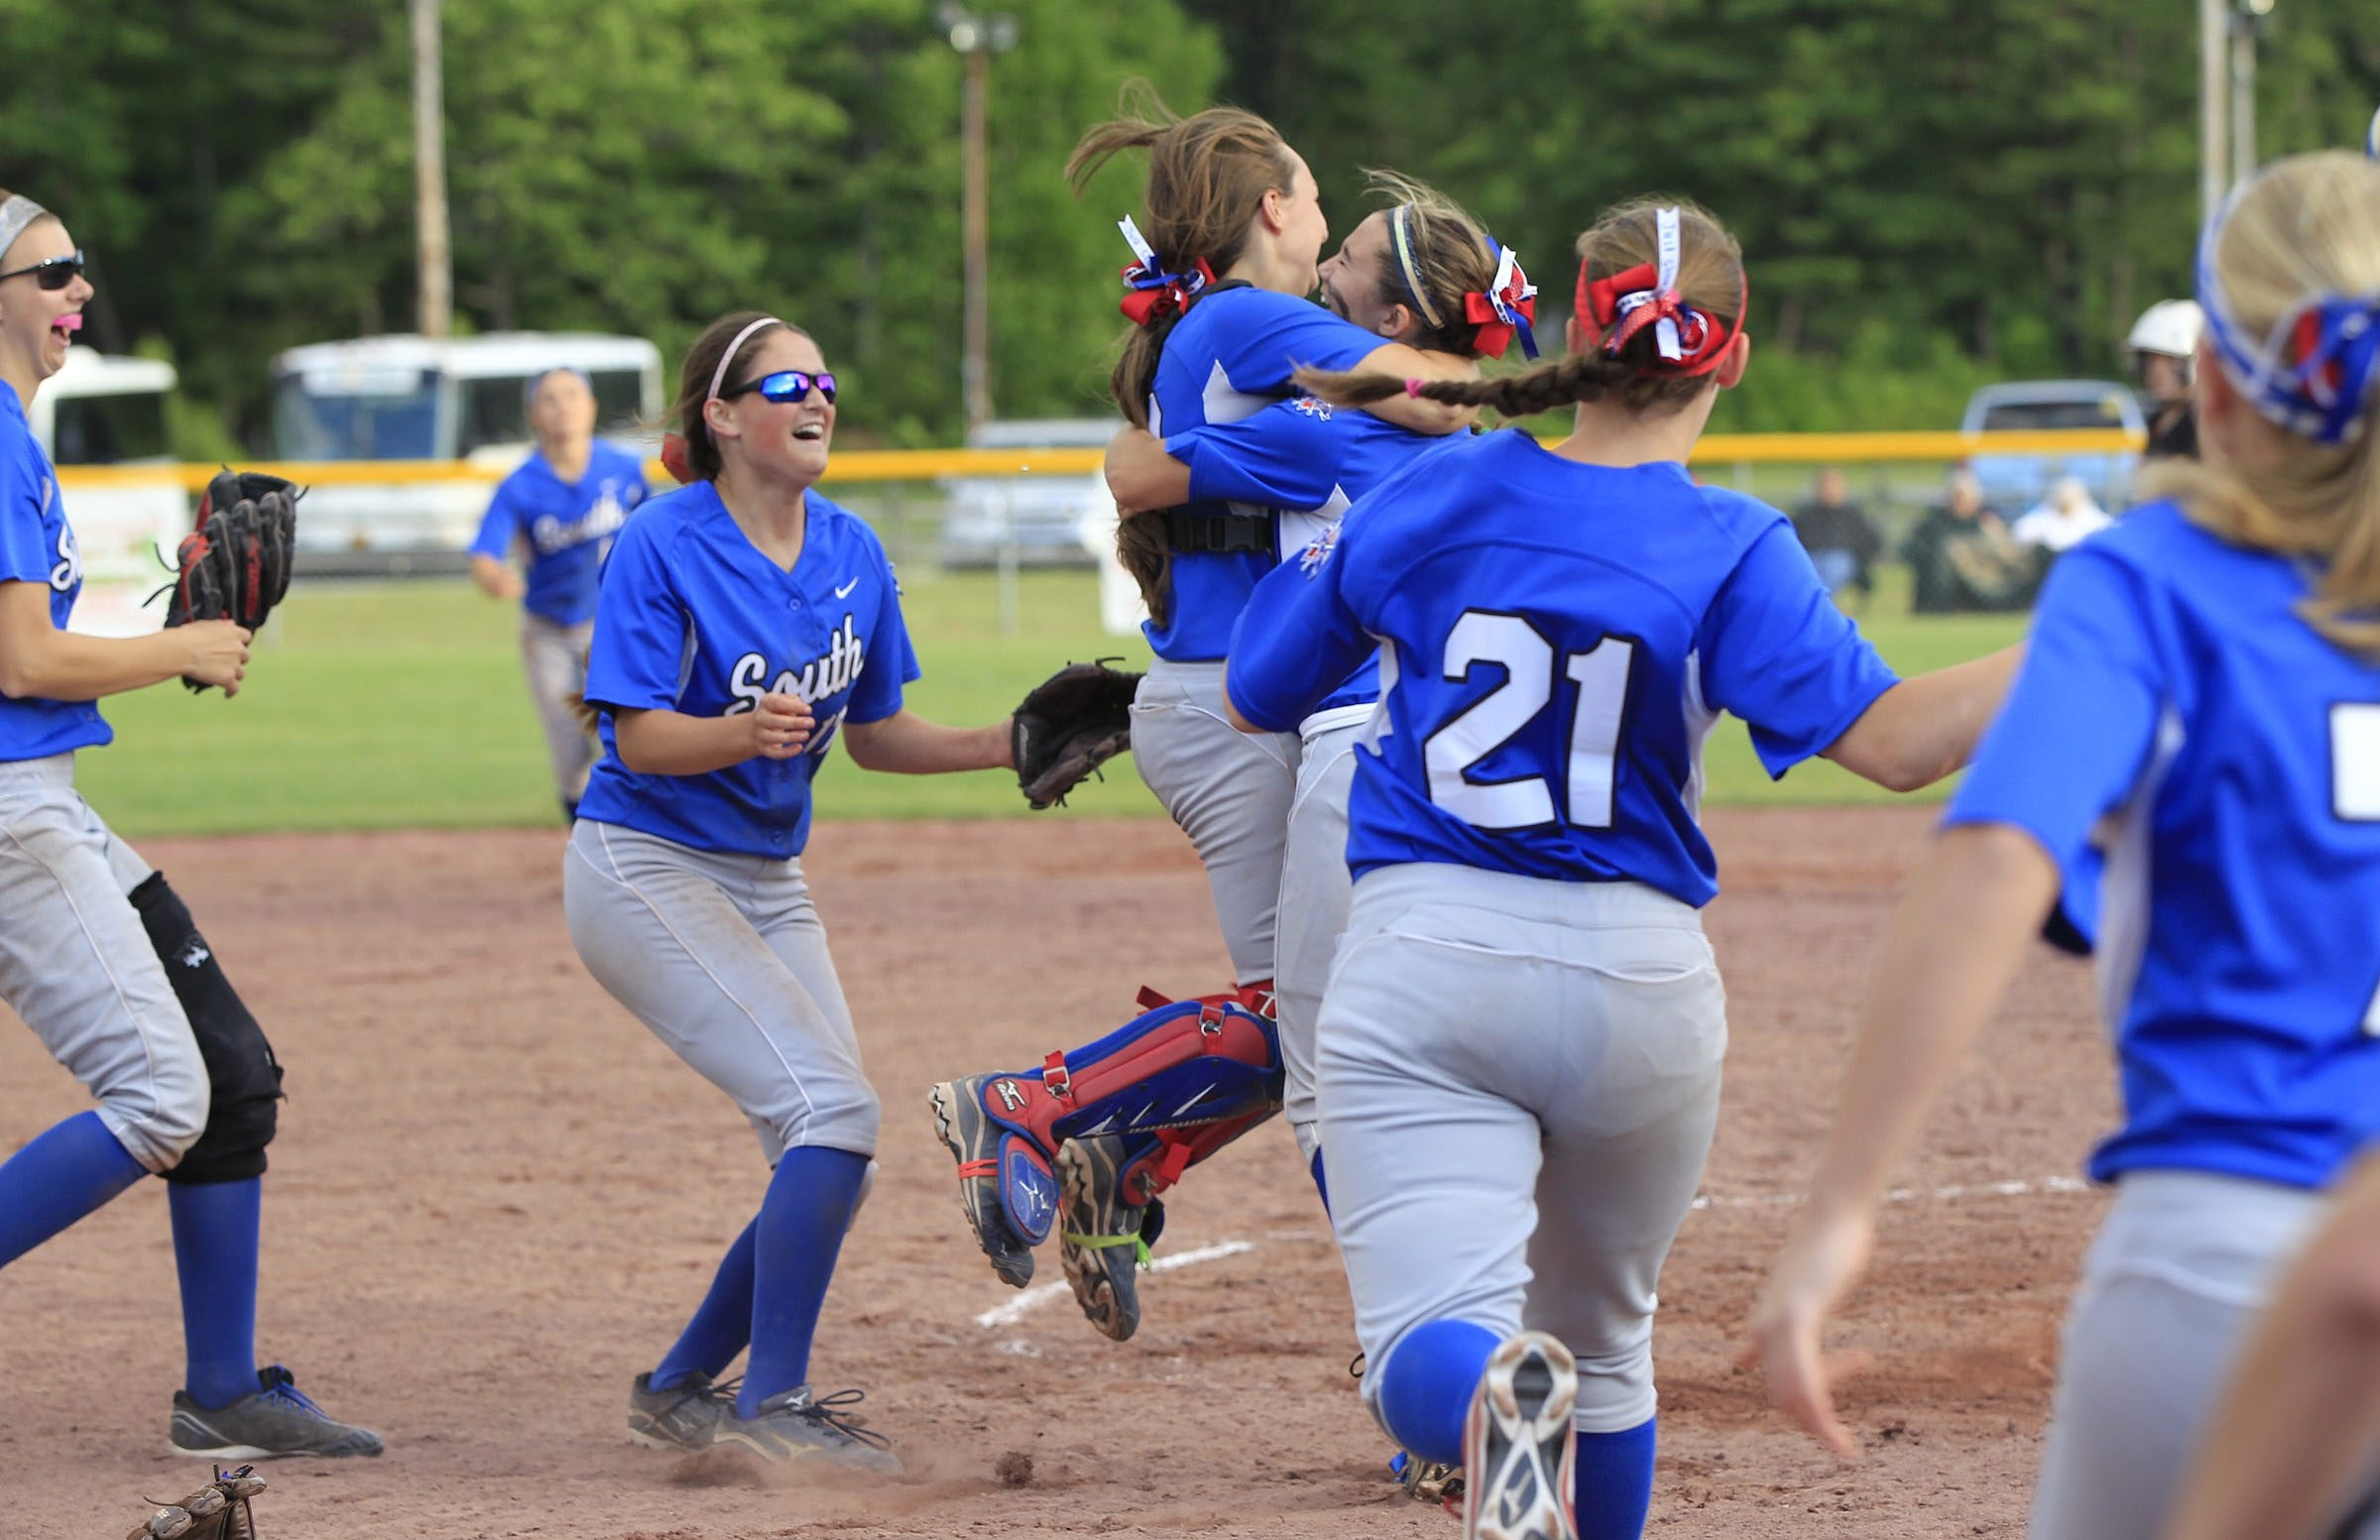 Williamsville South players celebrate their 21-4 victory over Sayville in the New York State Class A softball final Saturday.